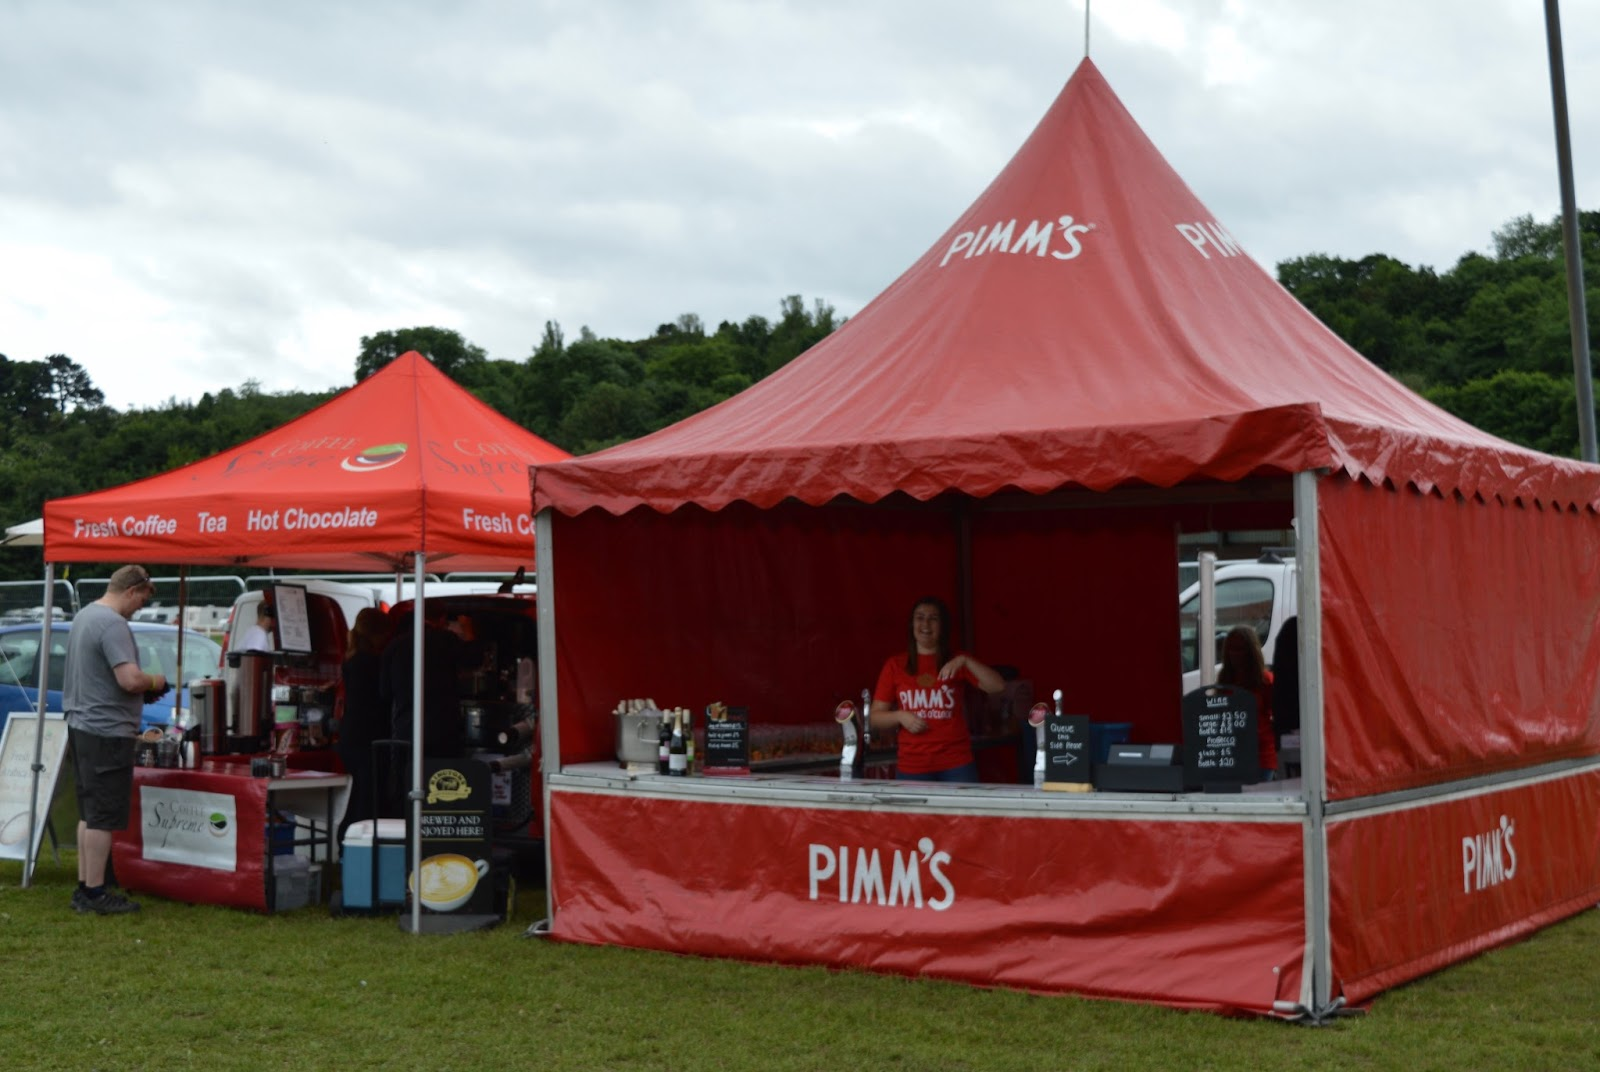 Corbridge Festival 2016 - pimms tent & Corbridge Festival 2016 - A Review | North East Family Fun